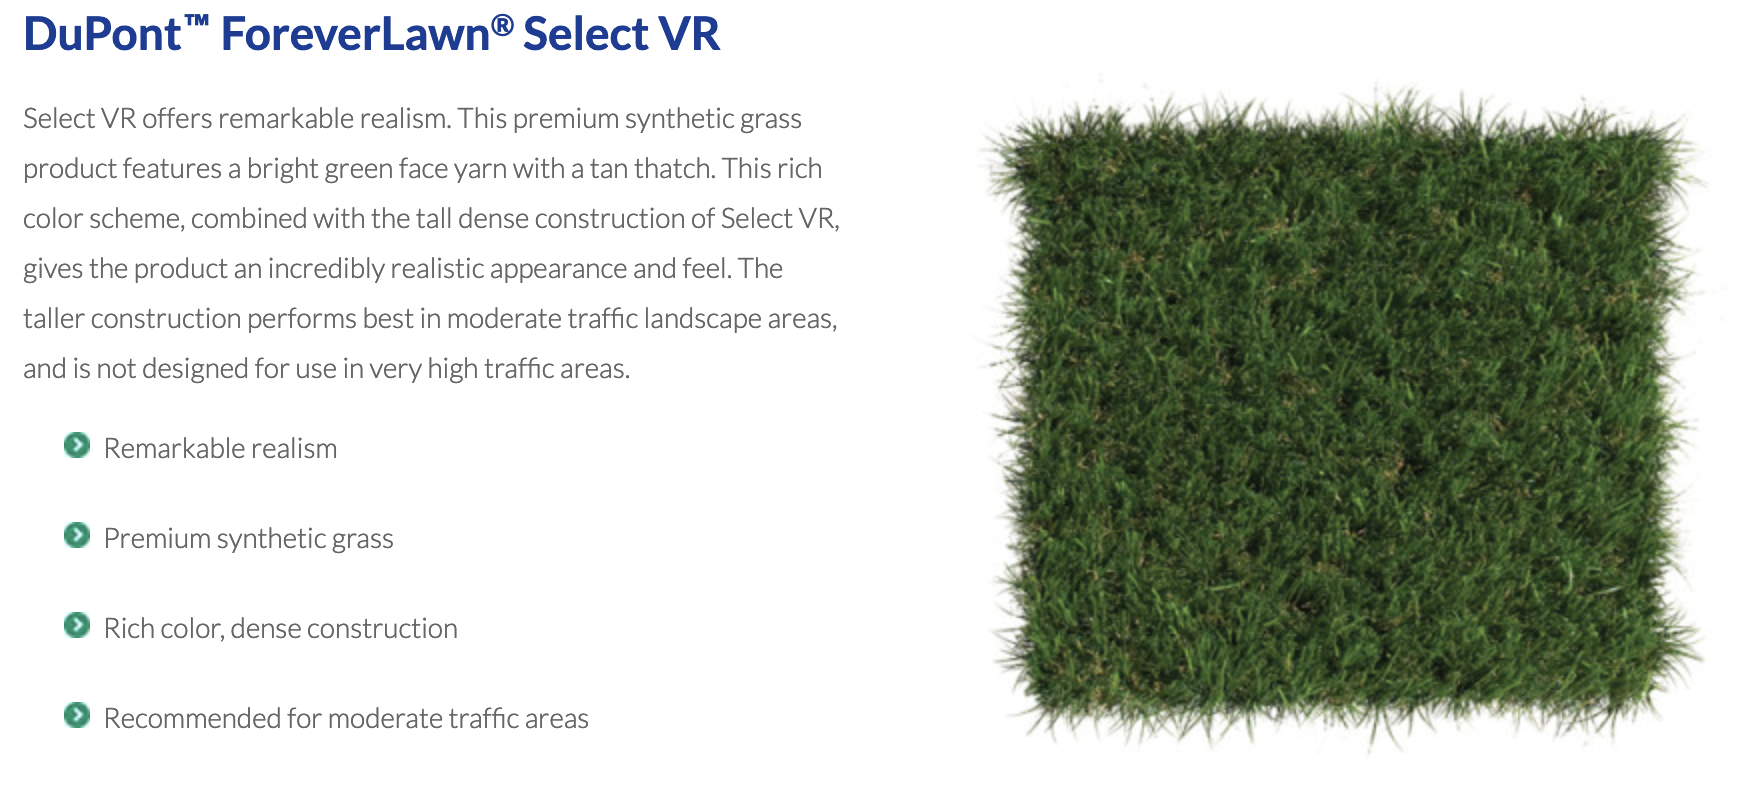 DuPont™ ForeverLawn® Select VR